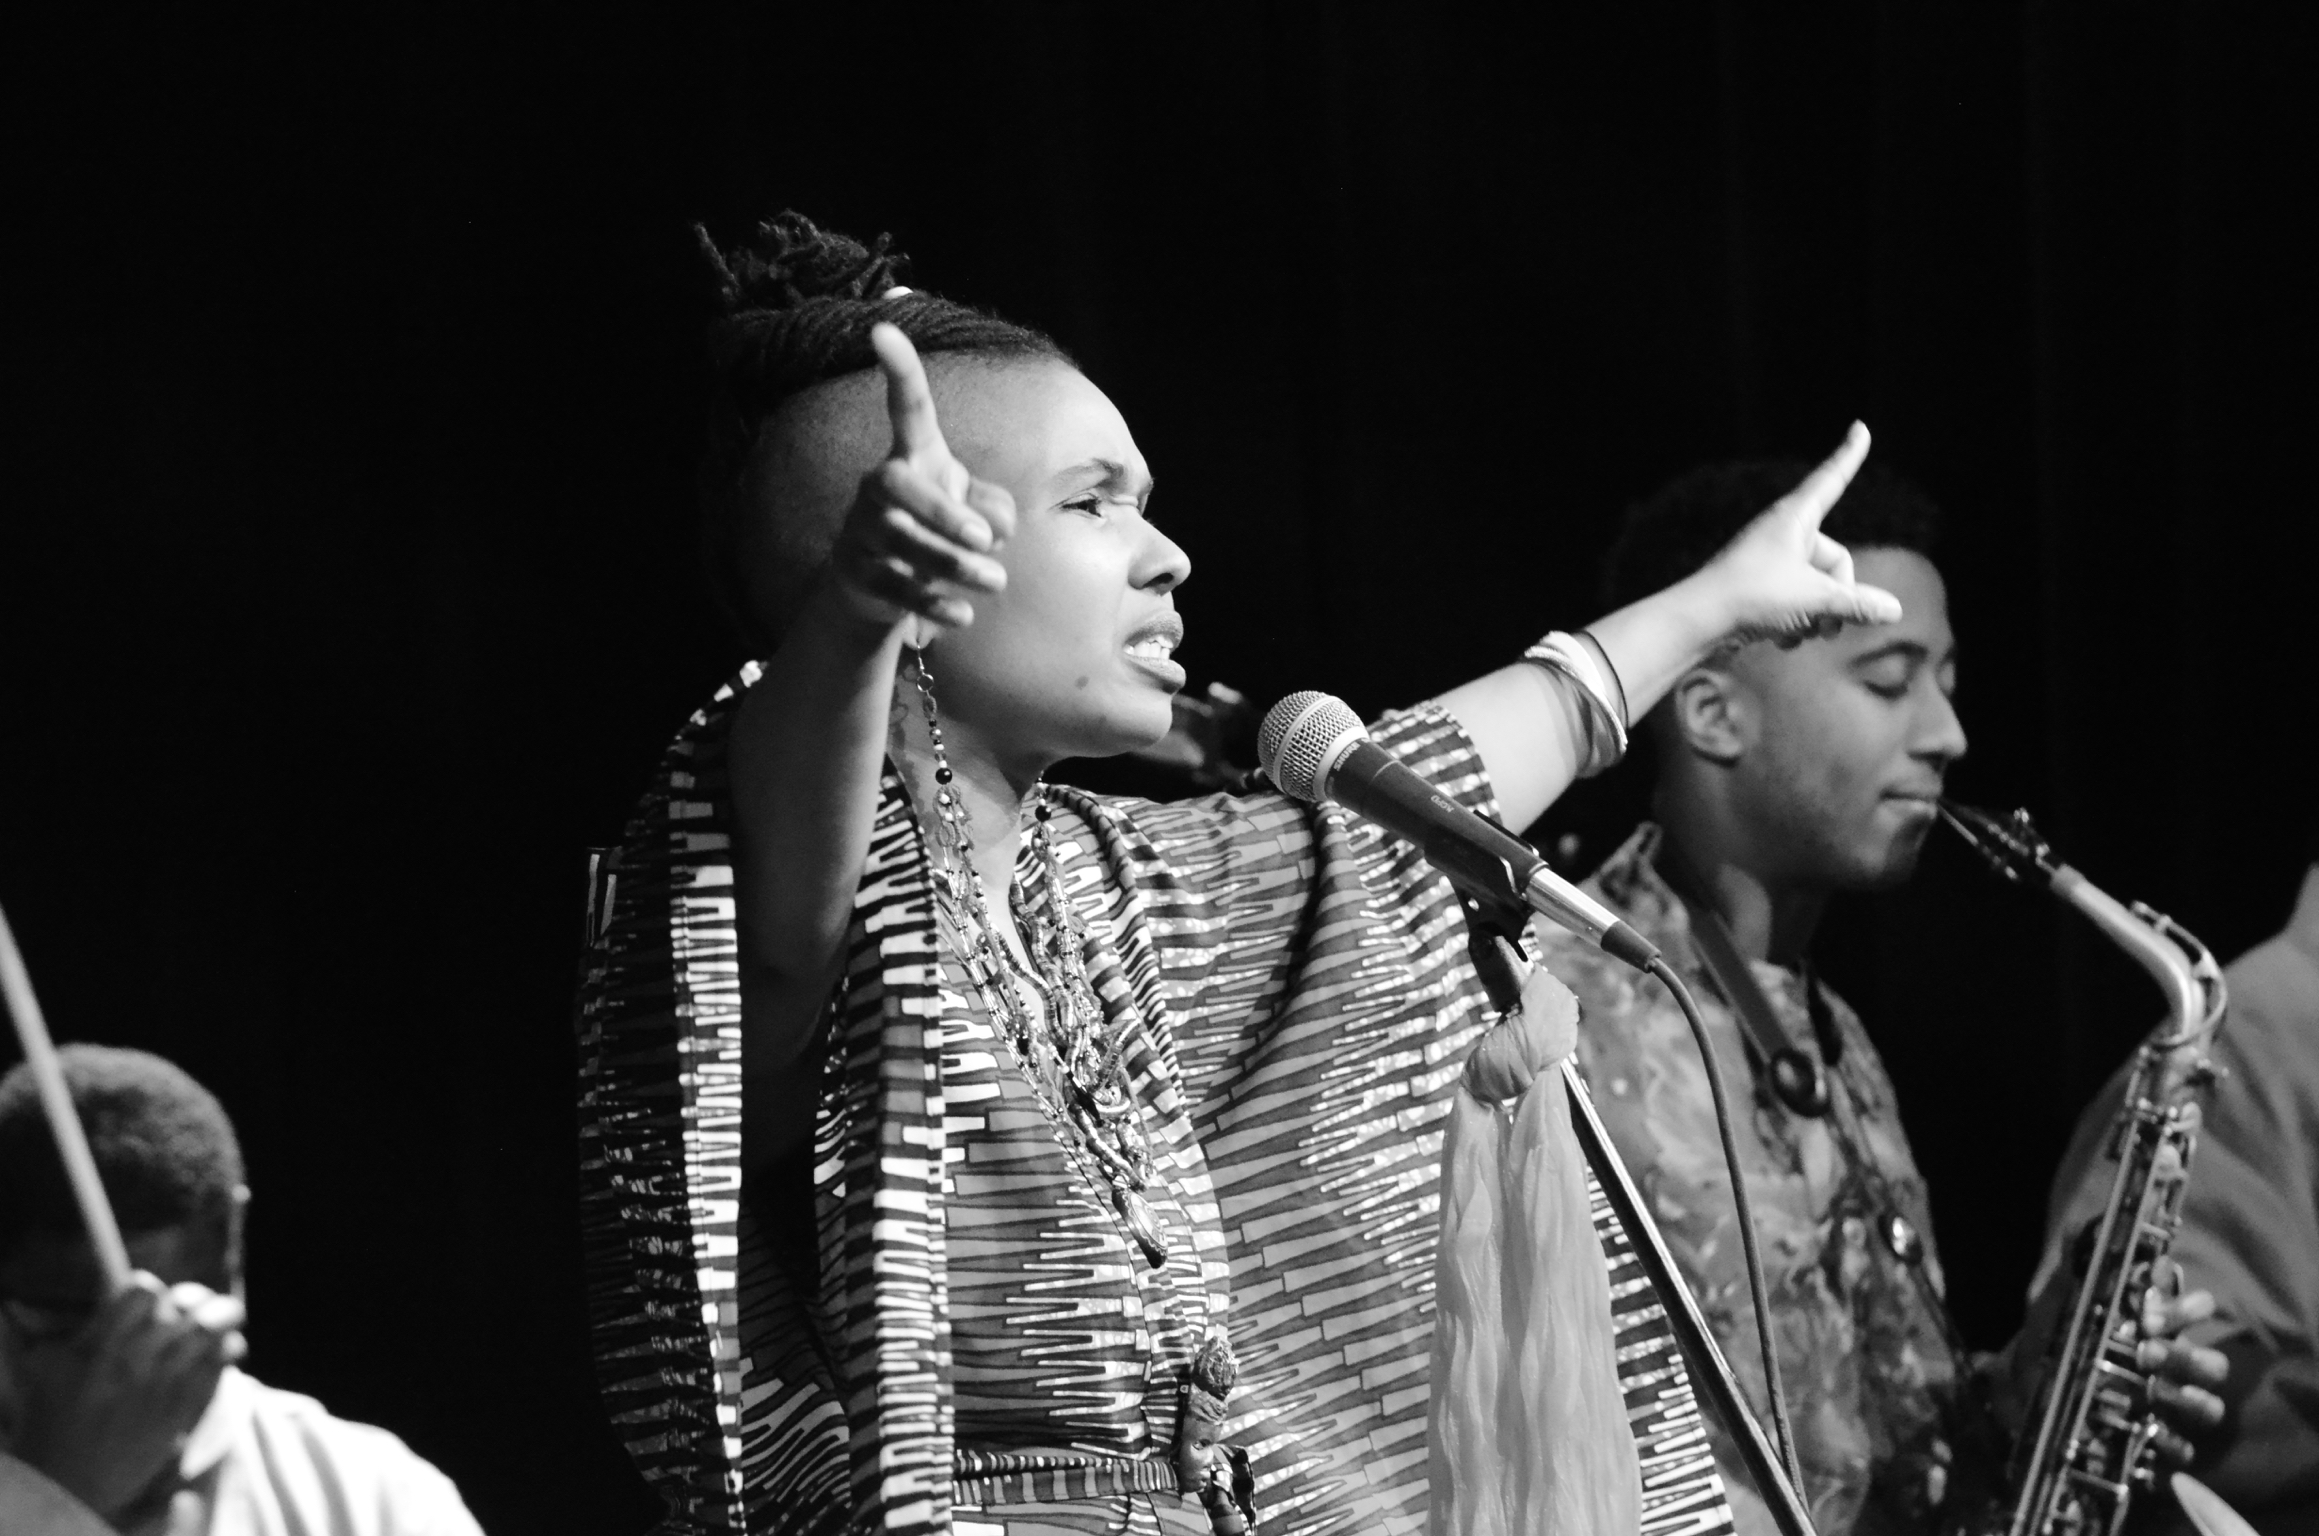 D.C. soul artist Akua Allrich commanding the stage in a live performance